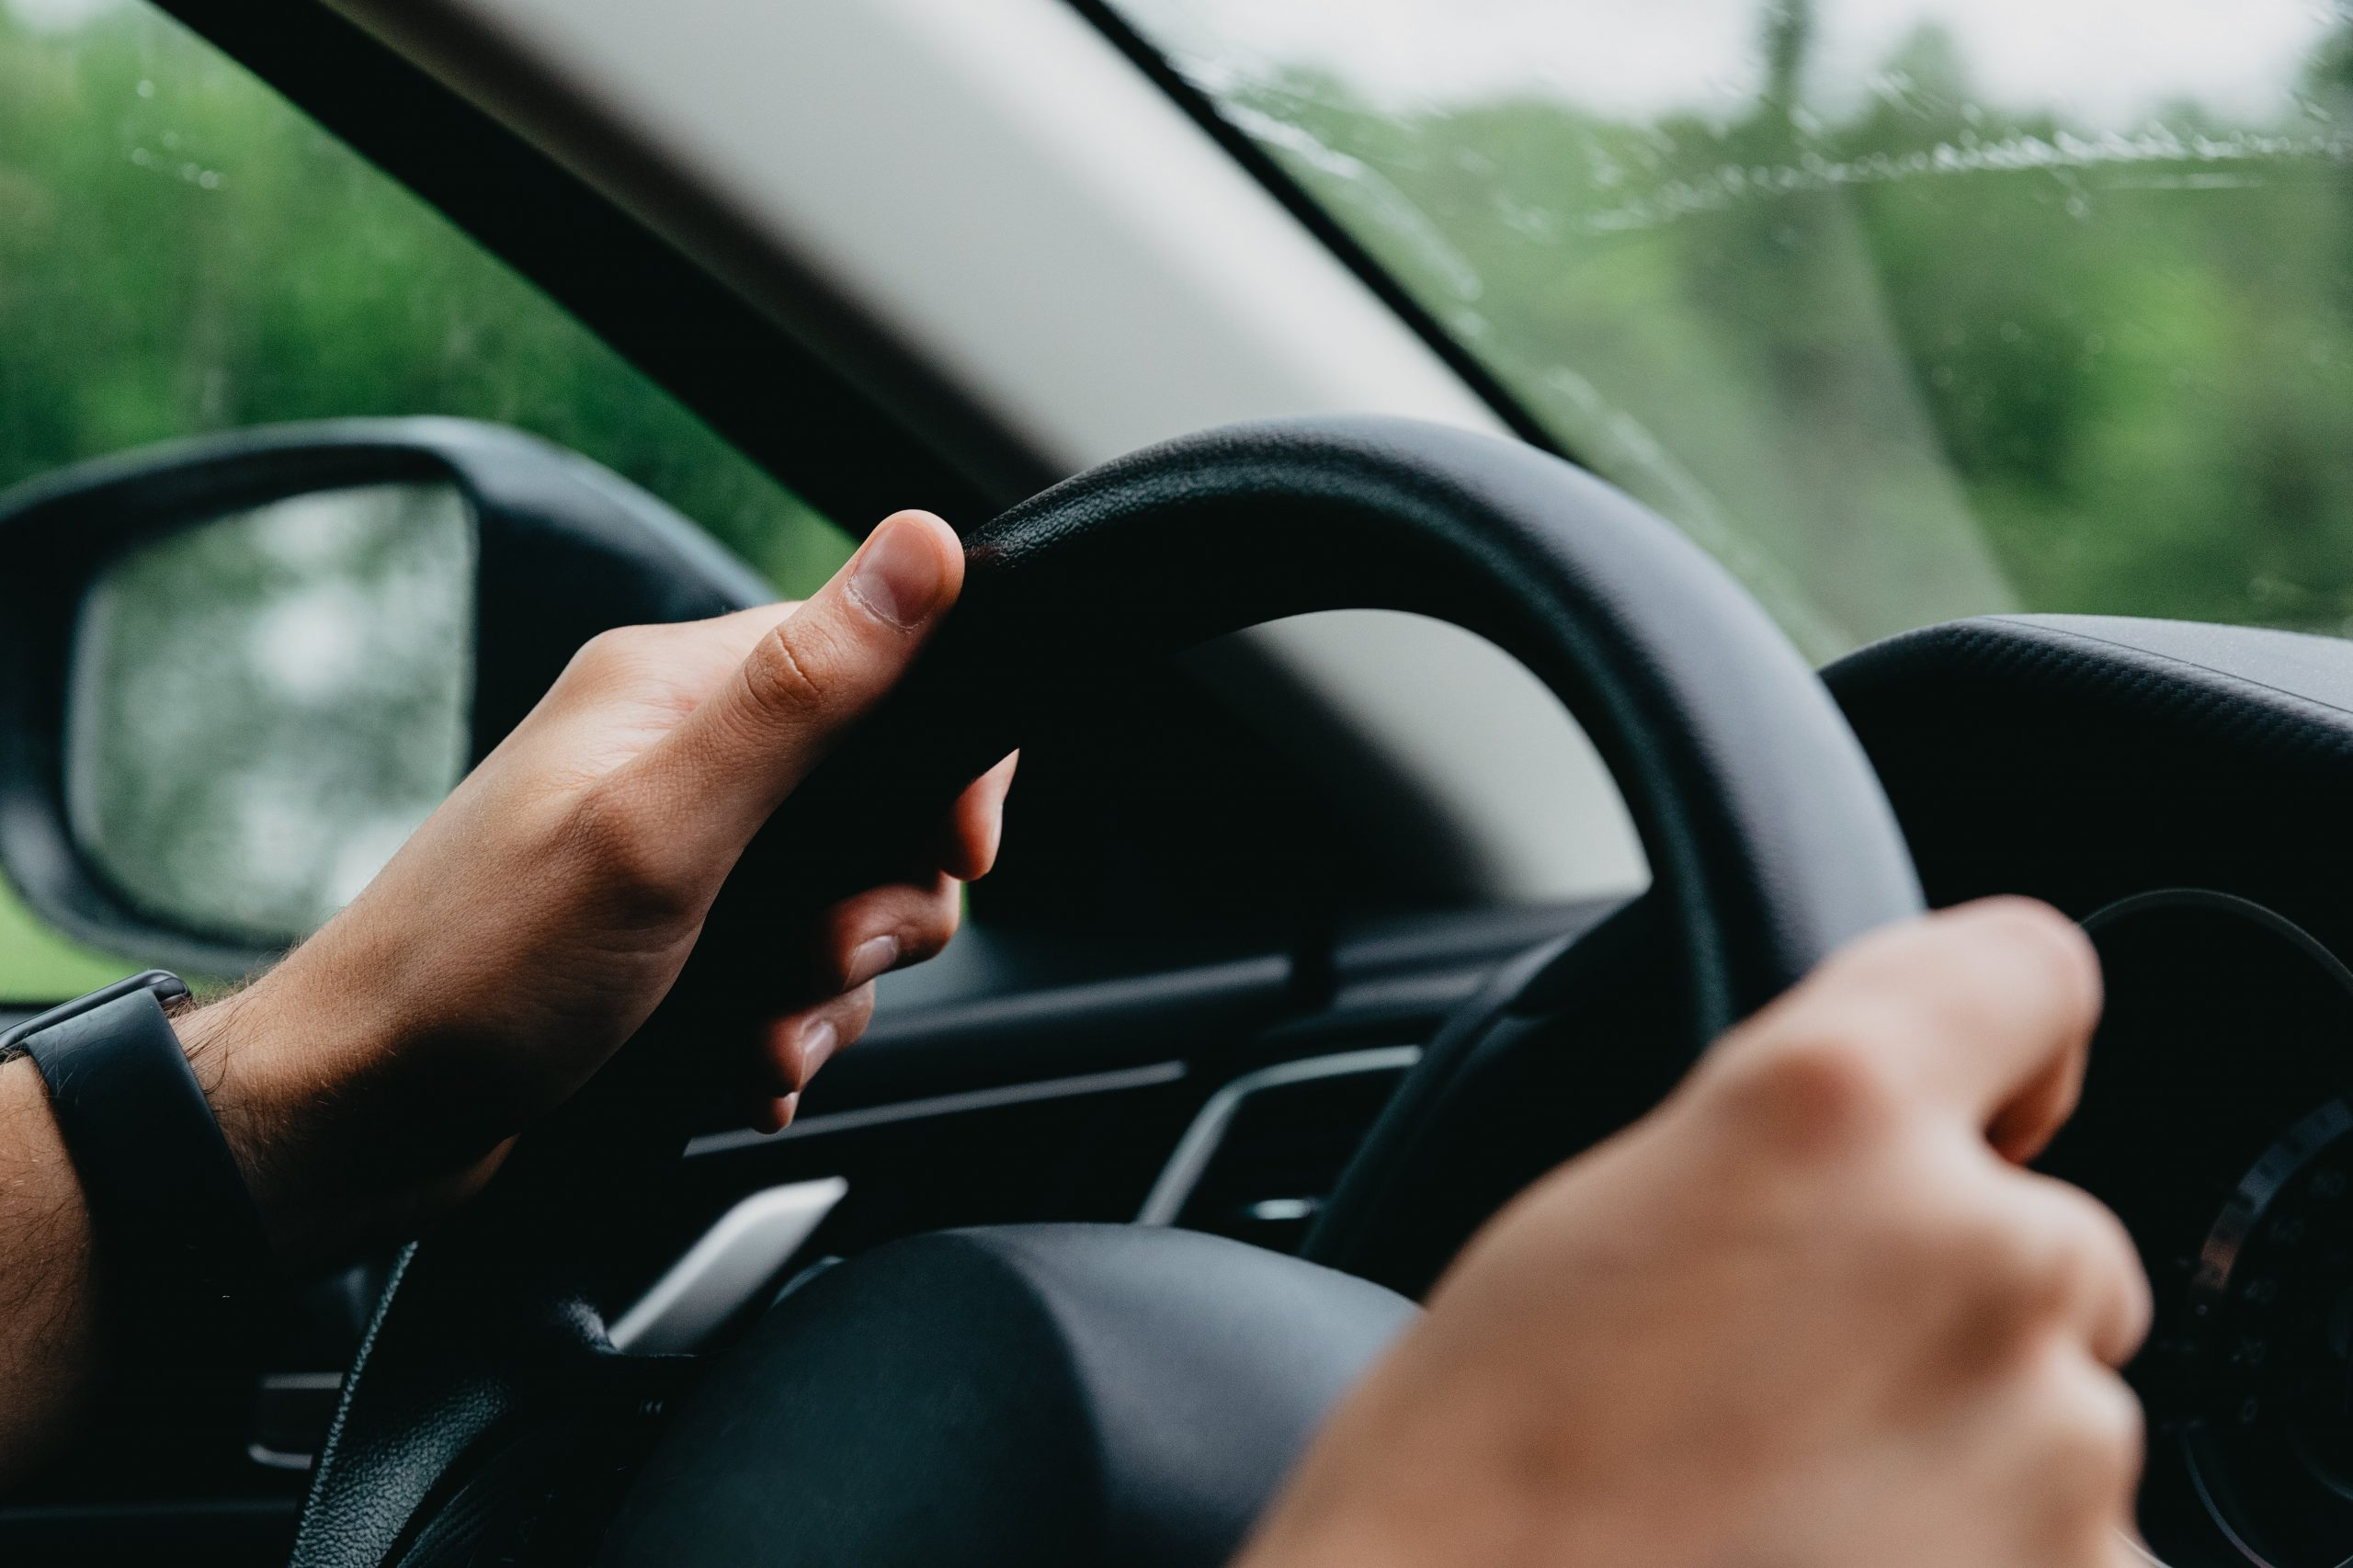 Dealing With Worry When Your Kid Gets Their Driver's License | Parent Cue Blog